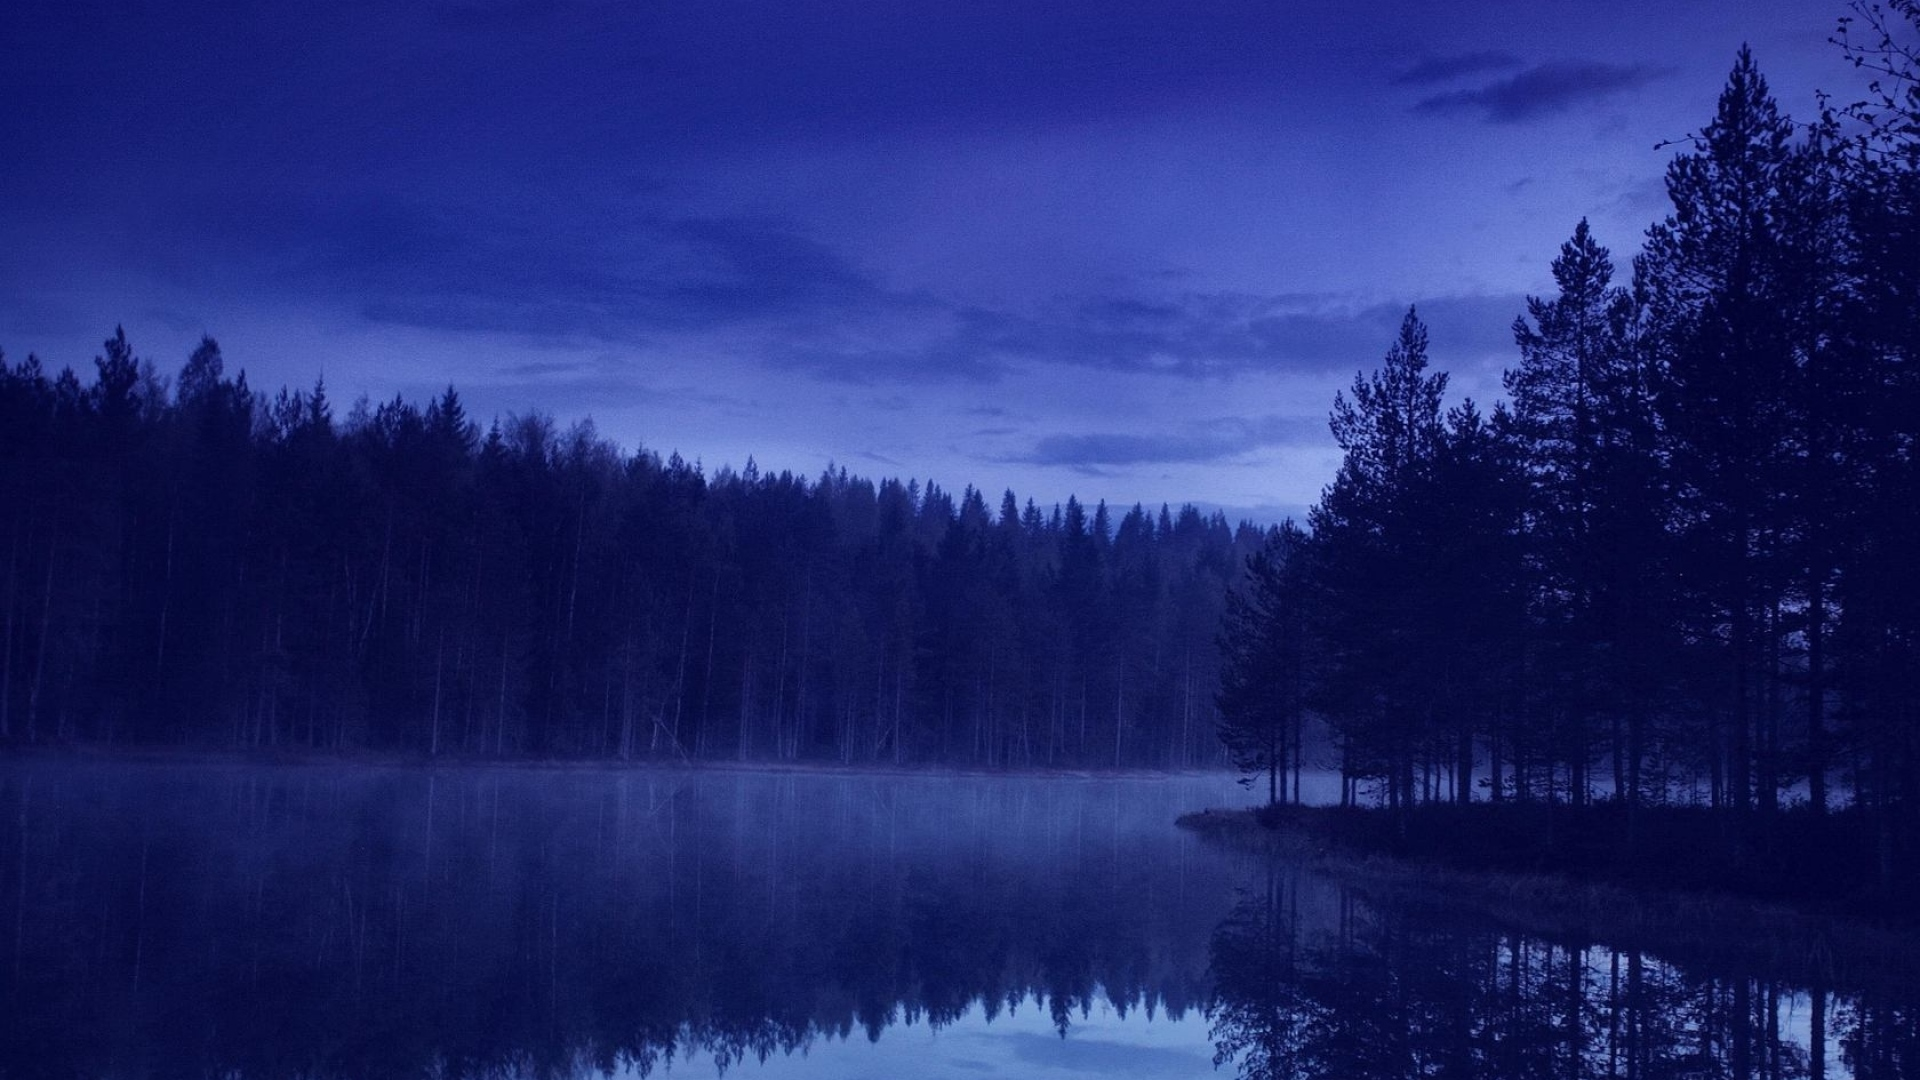 Night Forest Wallpaper